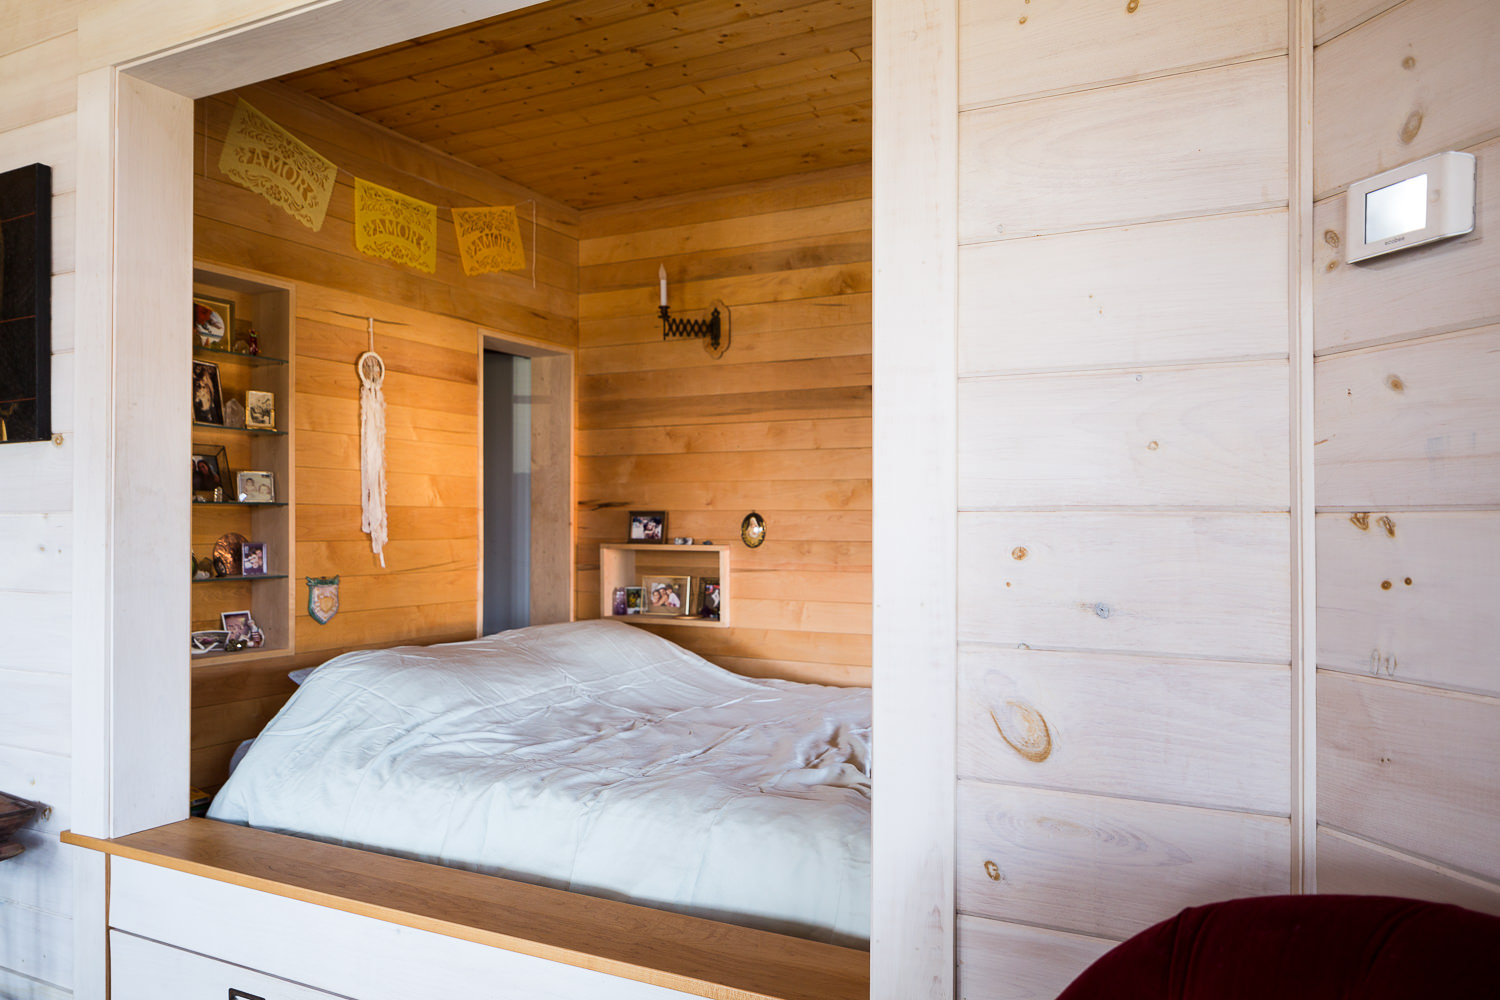 Interior architecture photo of bedroom in efficient farmhouse built by New Frameworks Natural Building in Middlesex Vermont